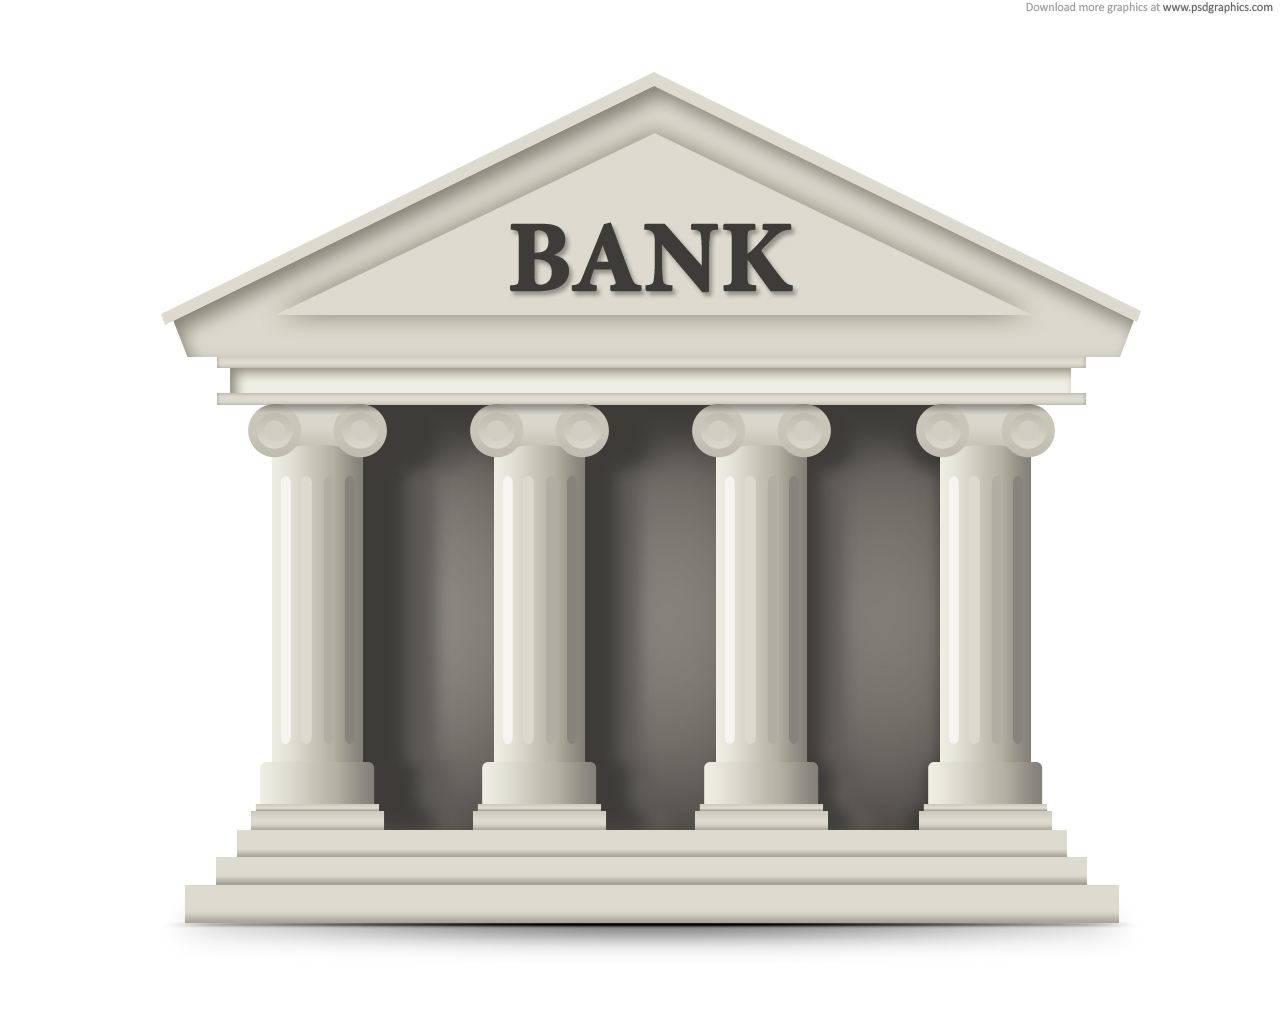 bank deposits Ways to deposit cash into an online bank if you use an online bank and anticipate making cash deposits, save time and avoid unnecessary fees by knowing your options in advance.